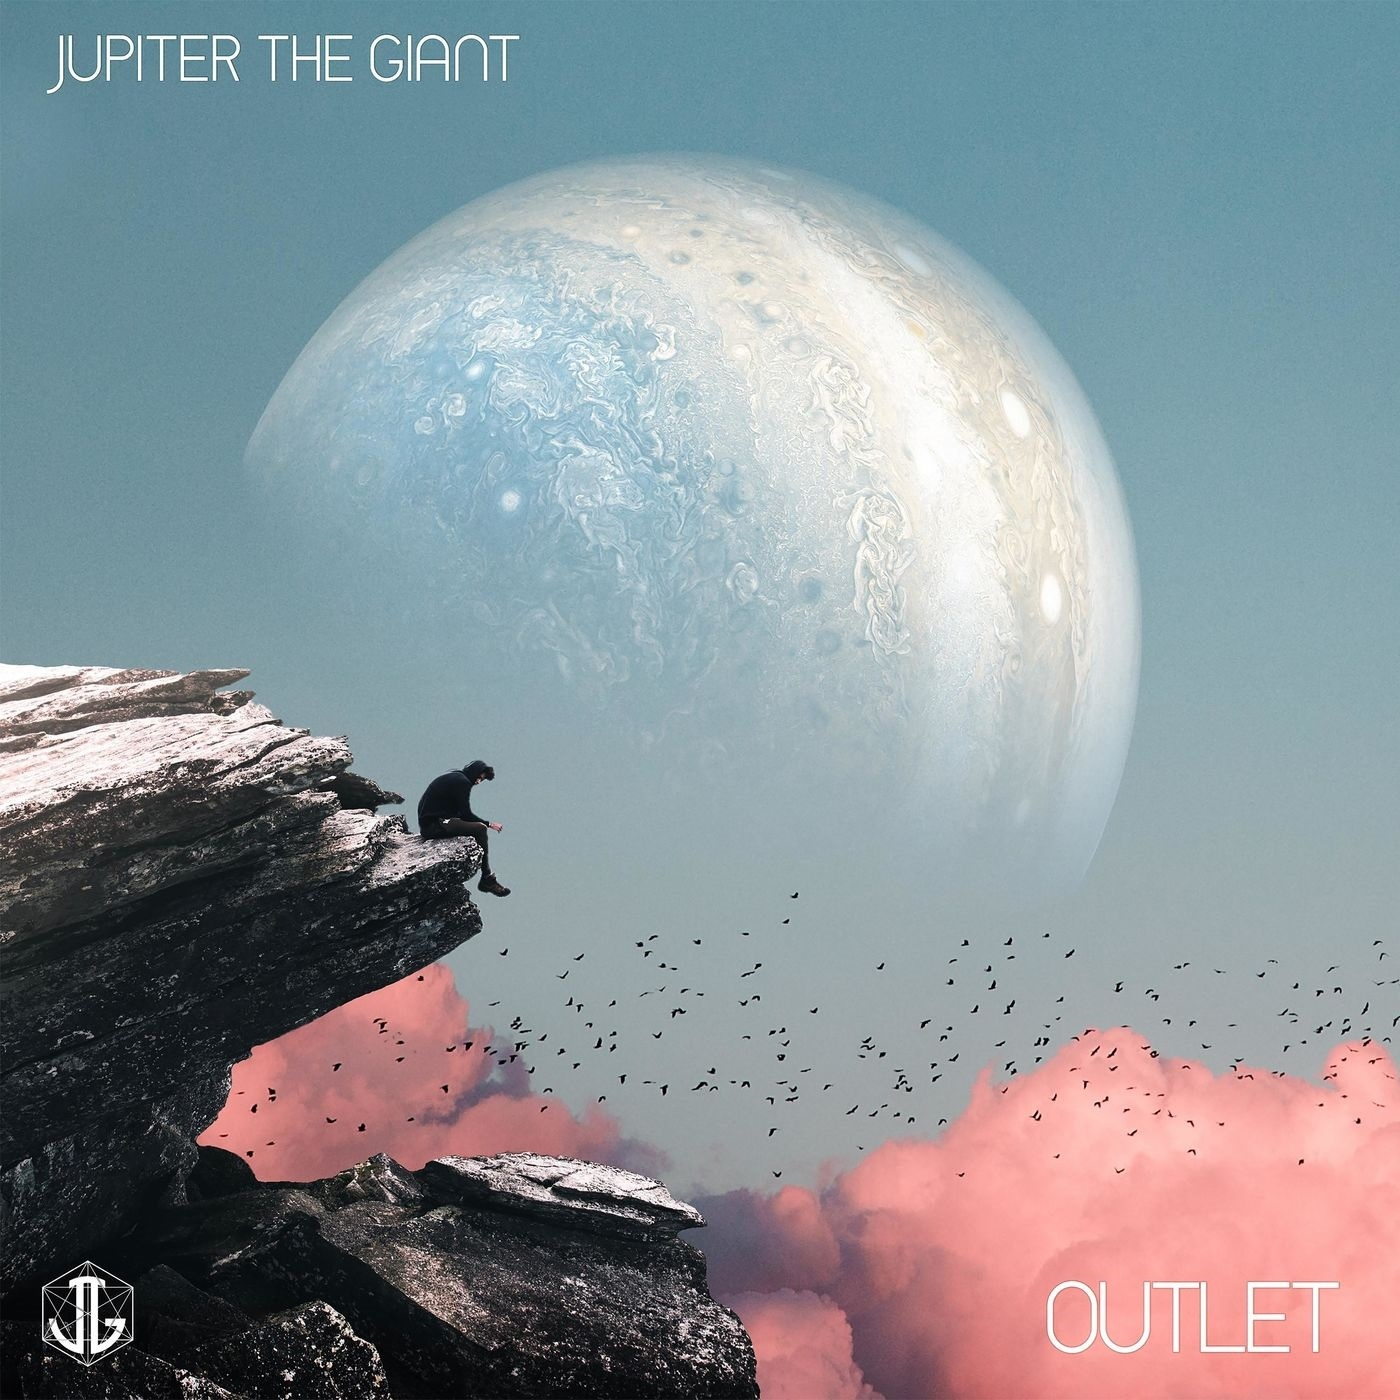 Jupiter The Giant - Outlet [EP] (2019)